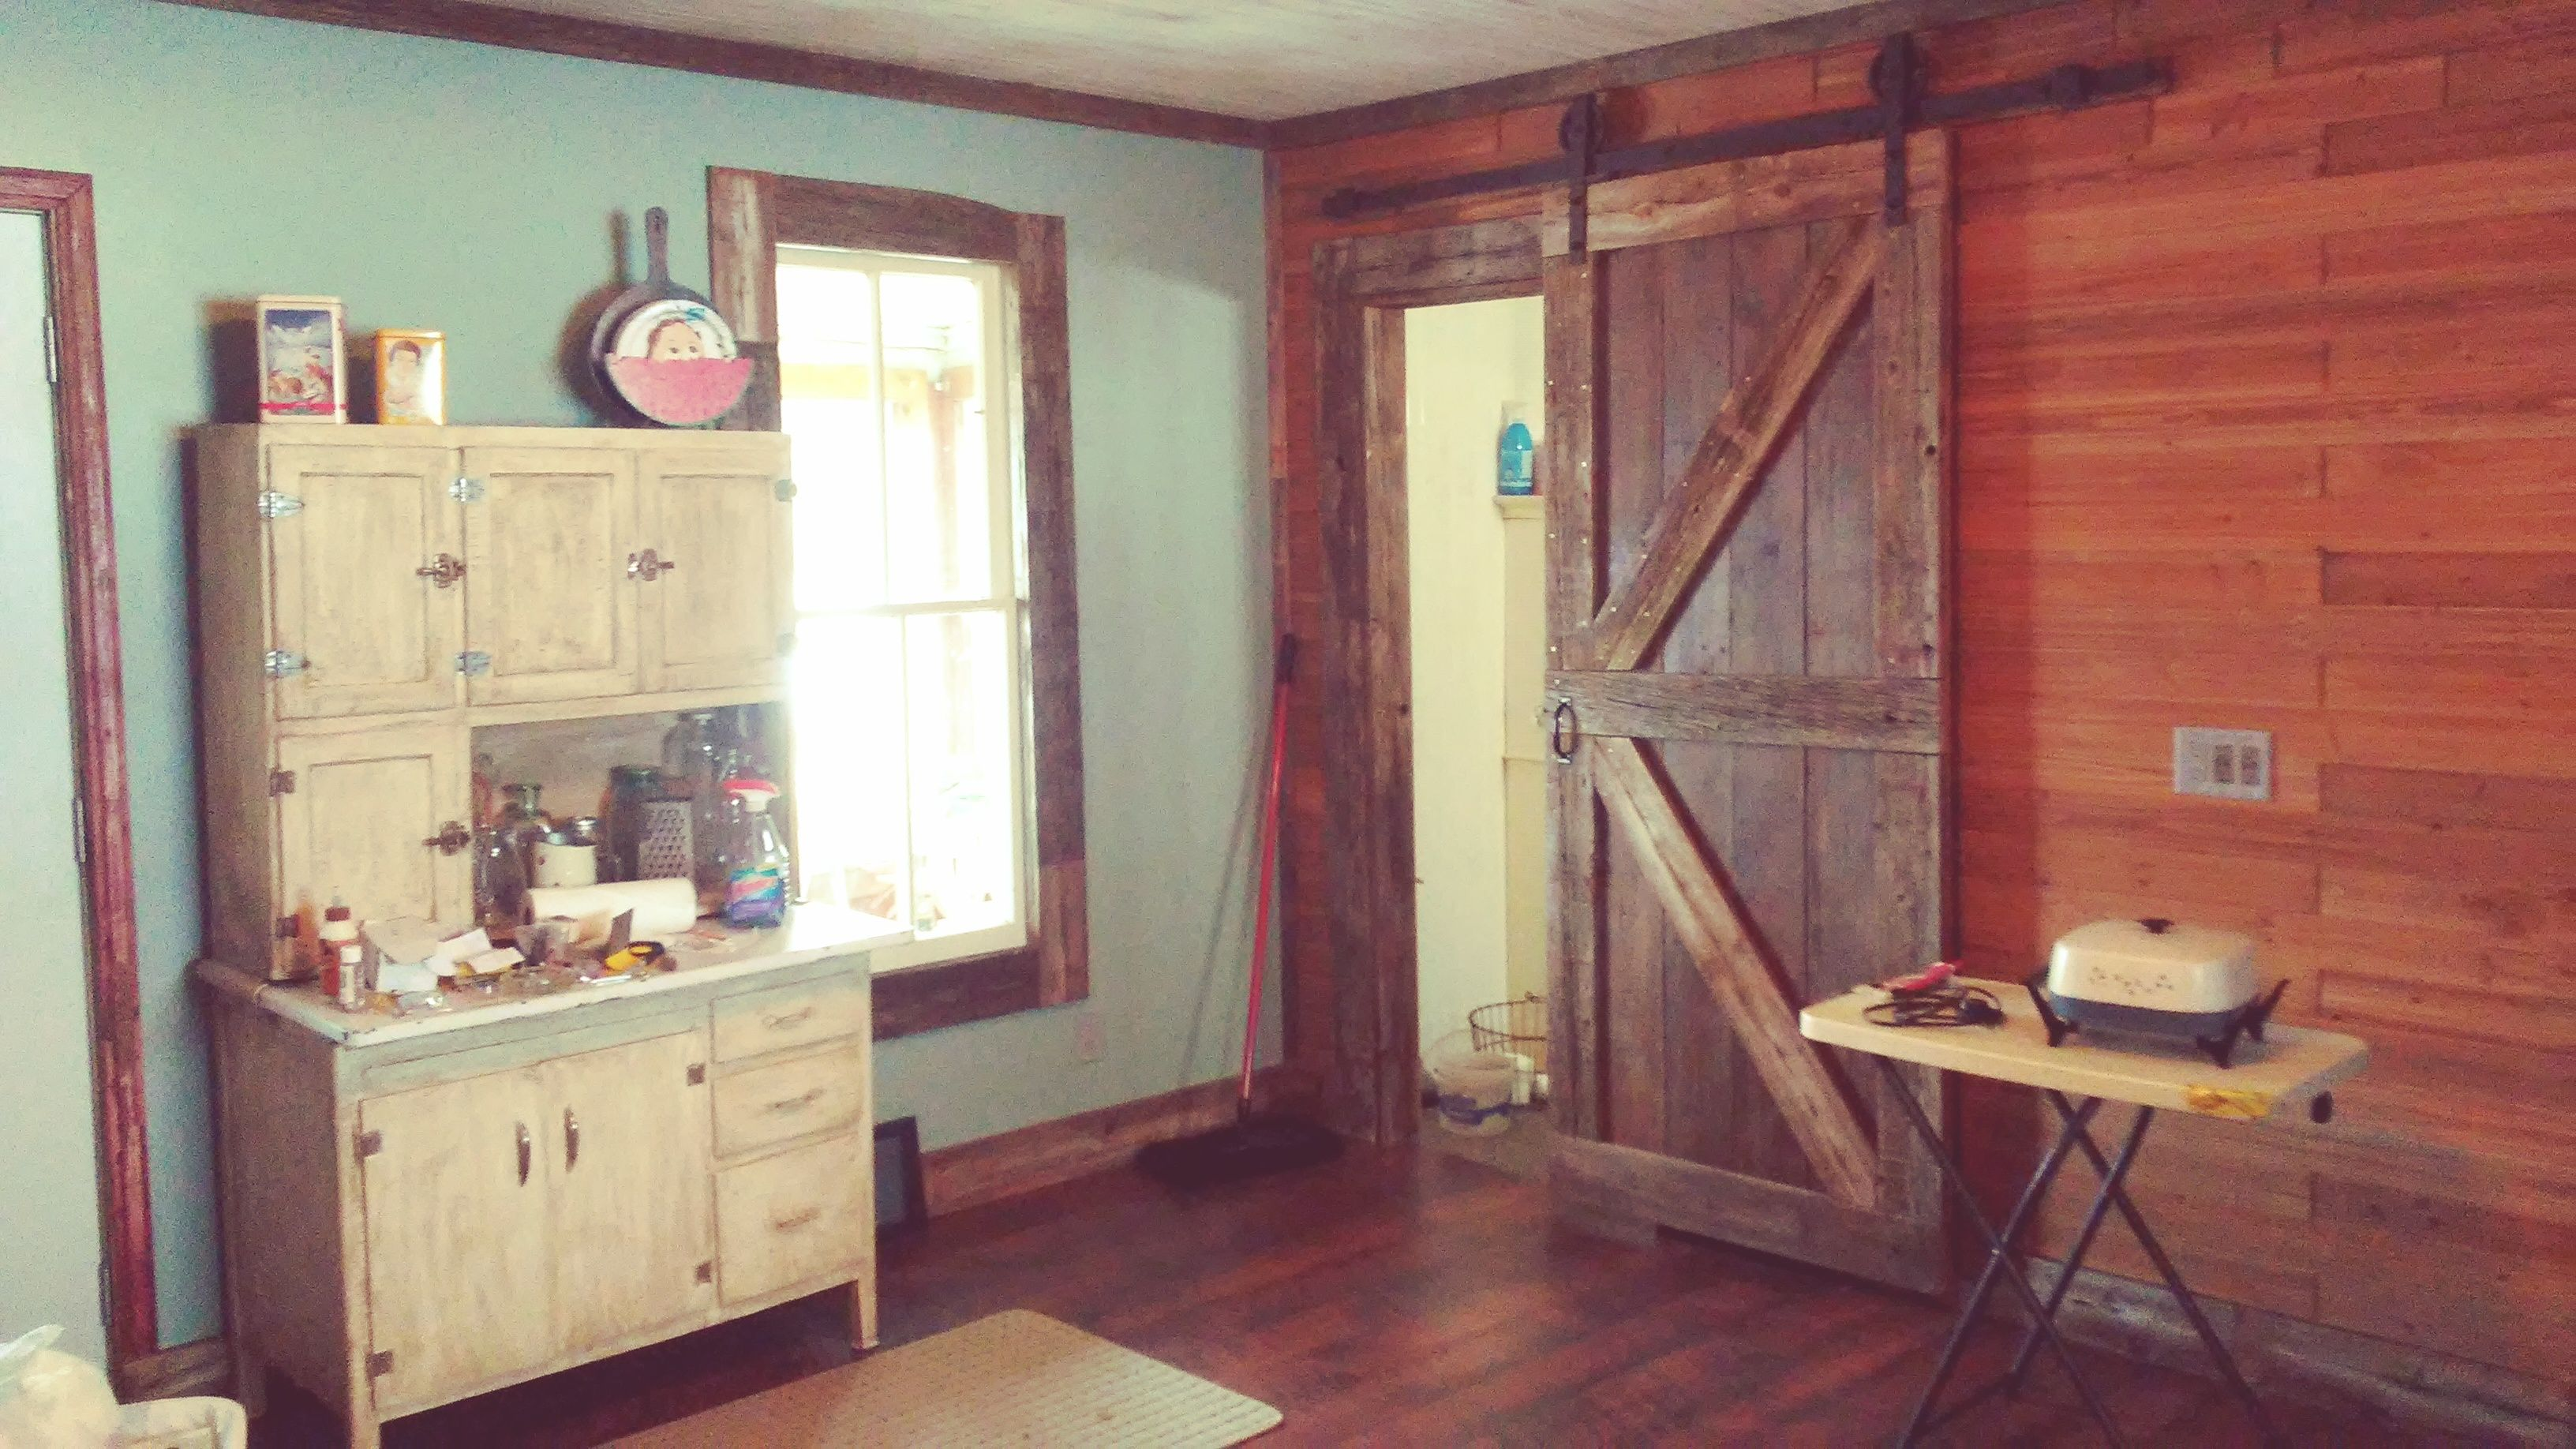 This Shows The Barn Door Again The Other Wall With The Cedar Planks